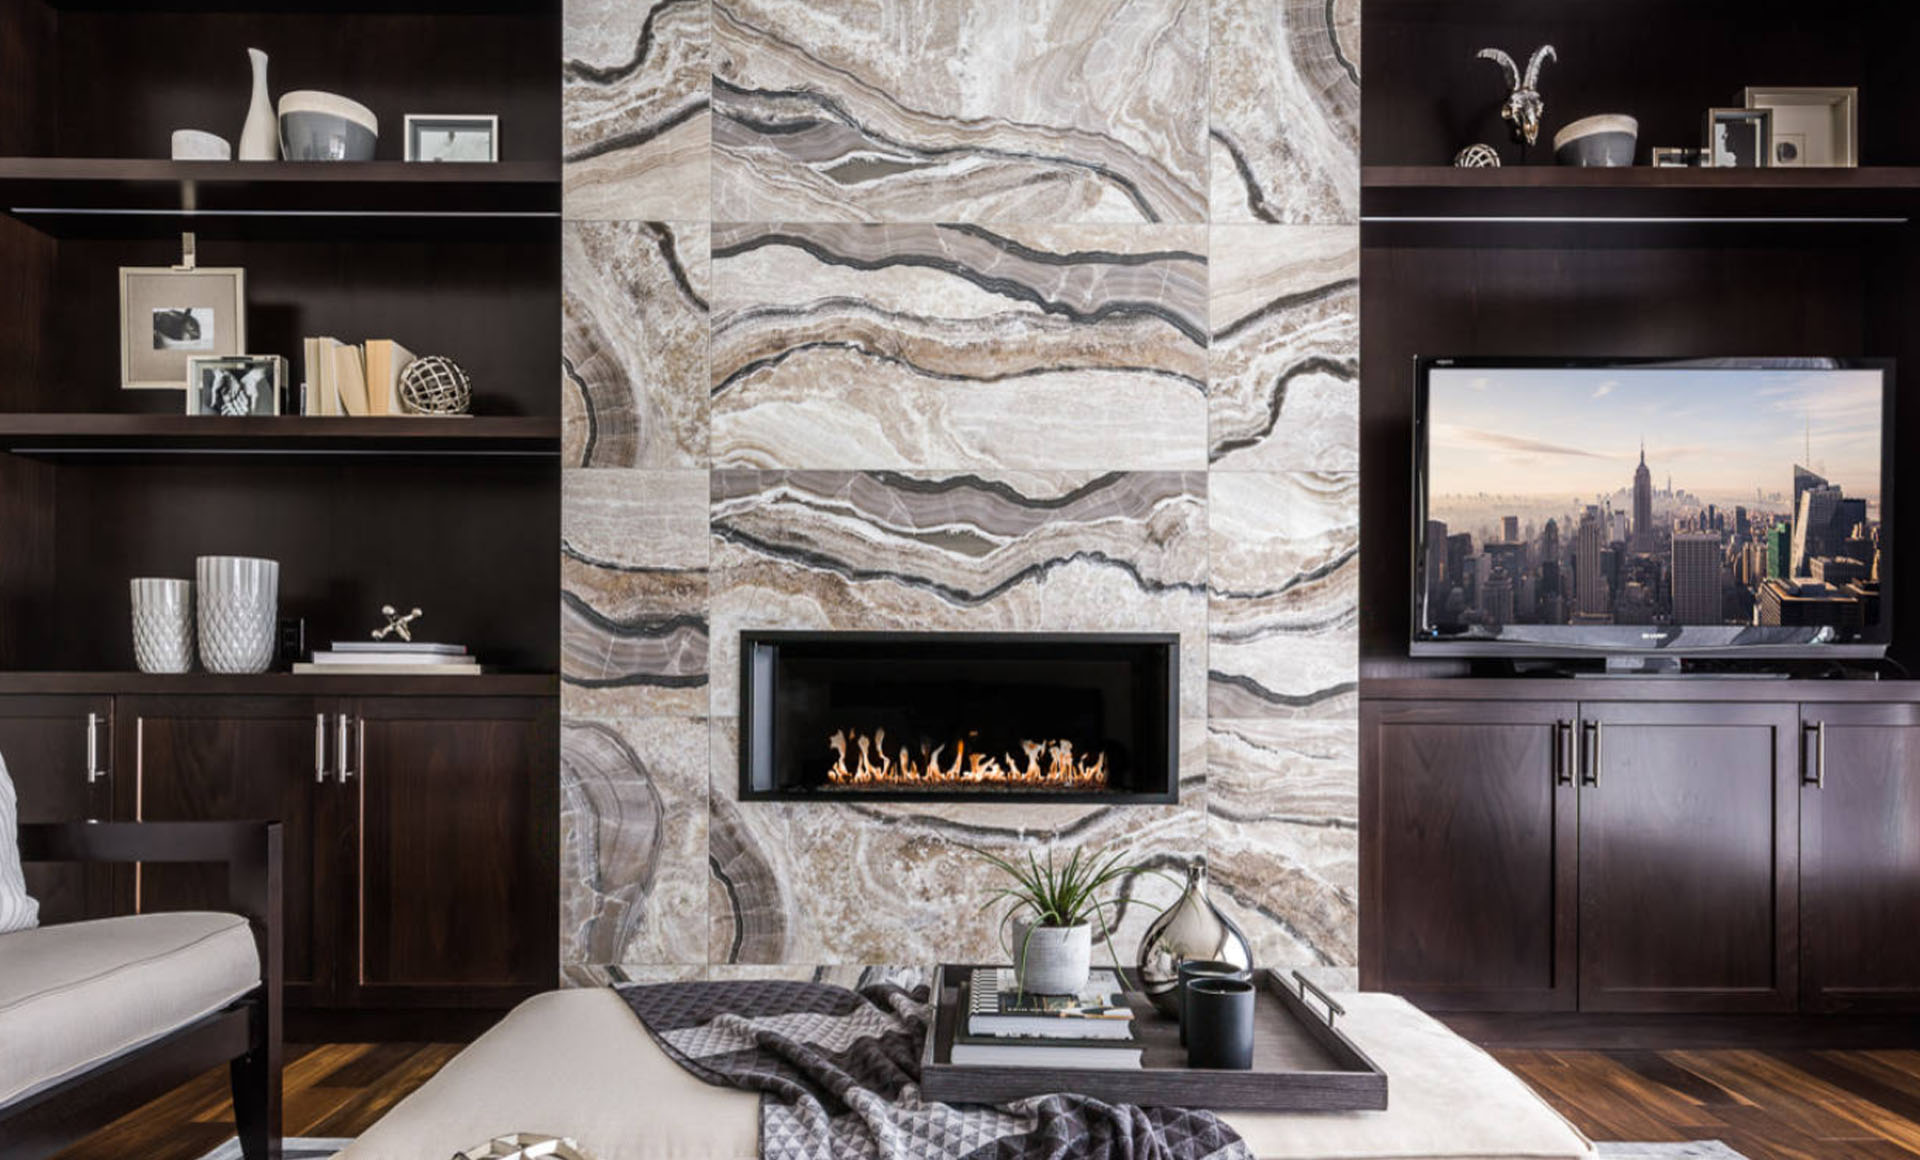 Fireplace Fundamentals 13 Fireplace Ideas To Spark Up Your Home Home Remodeling Contractors Sebring Design Build